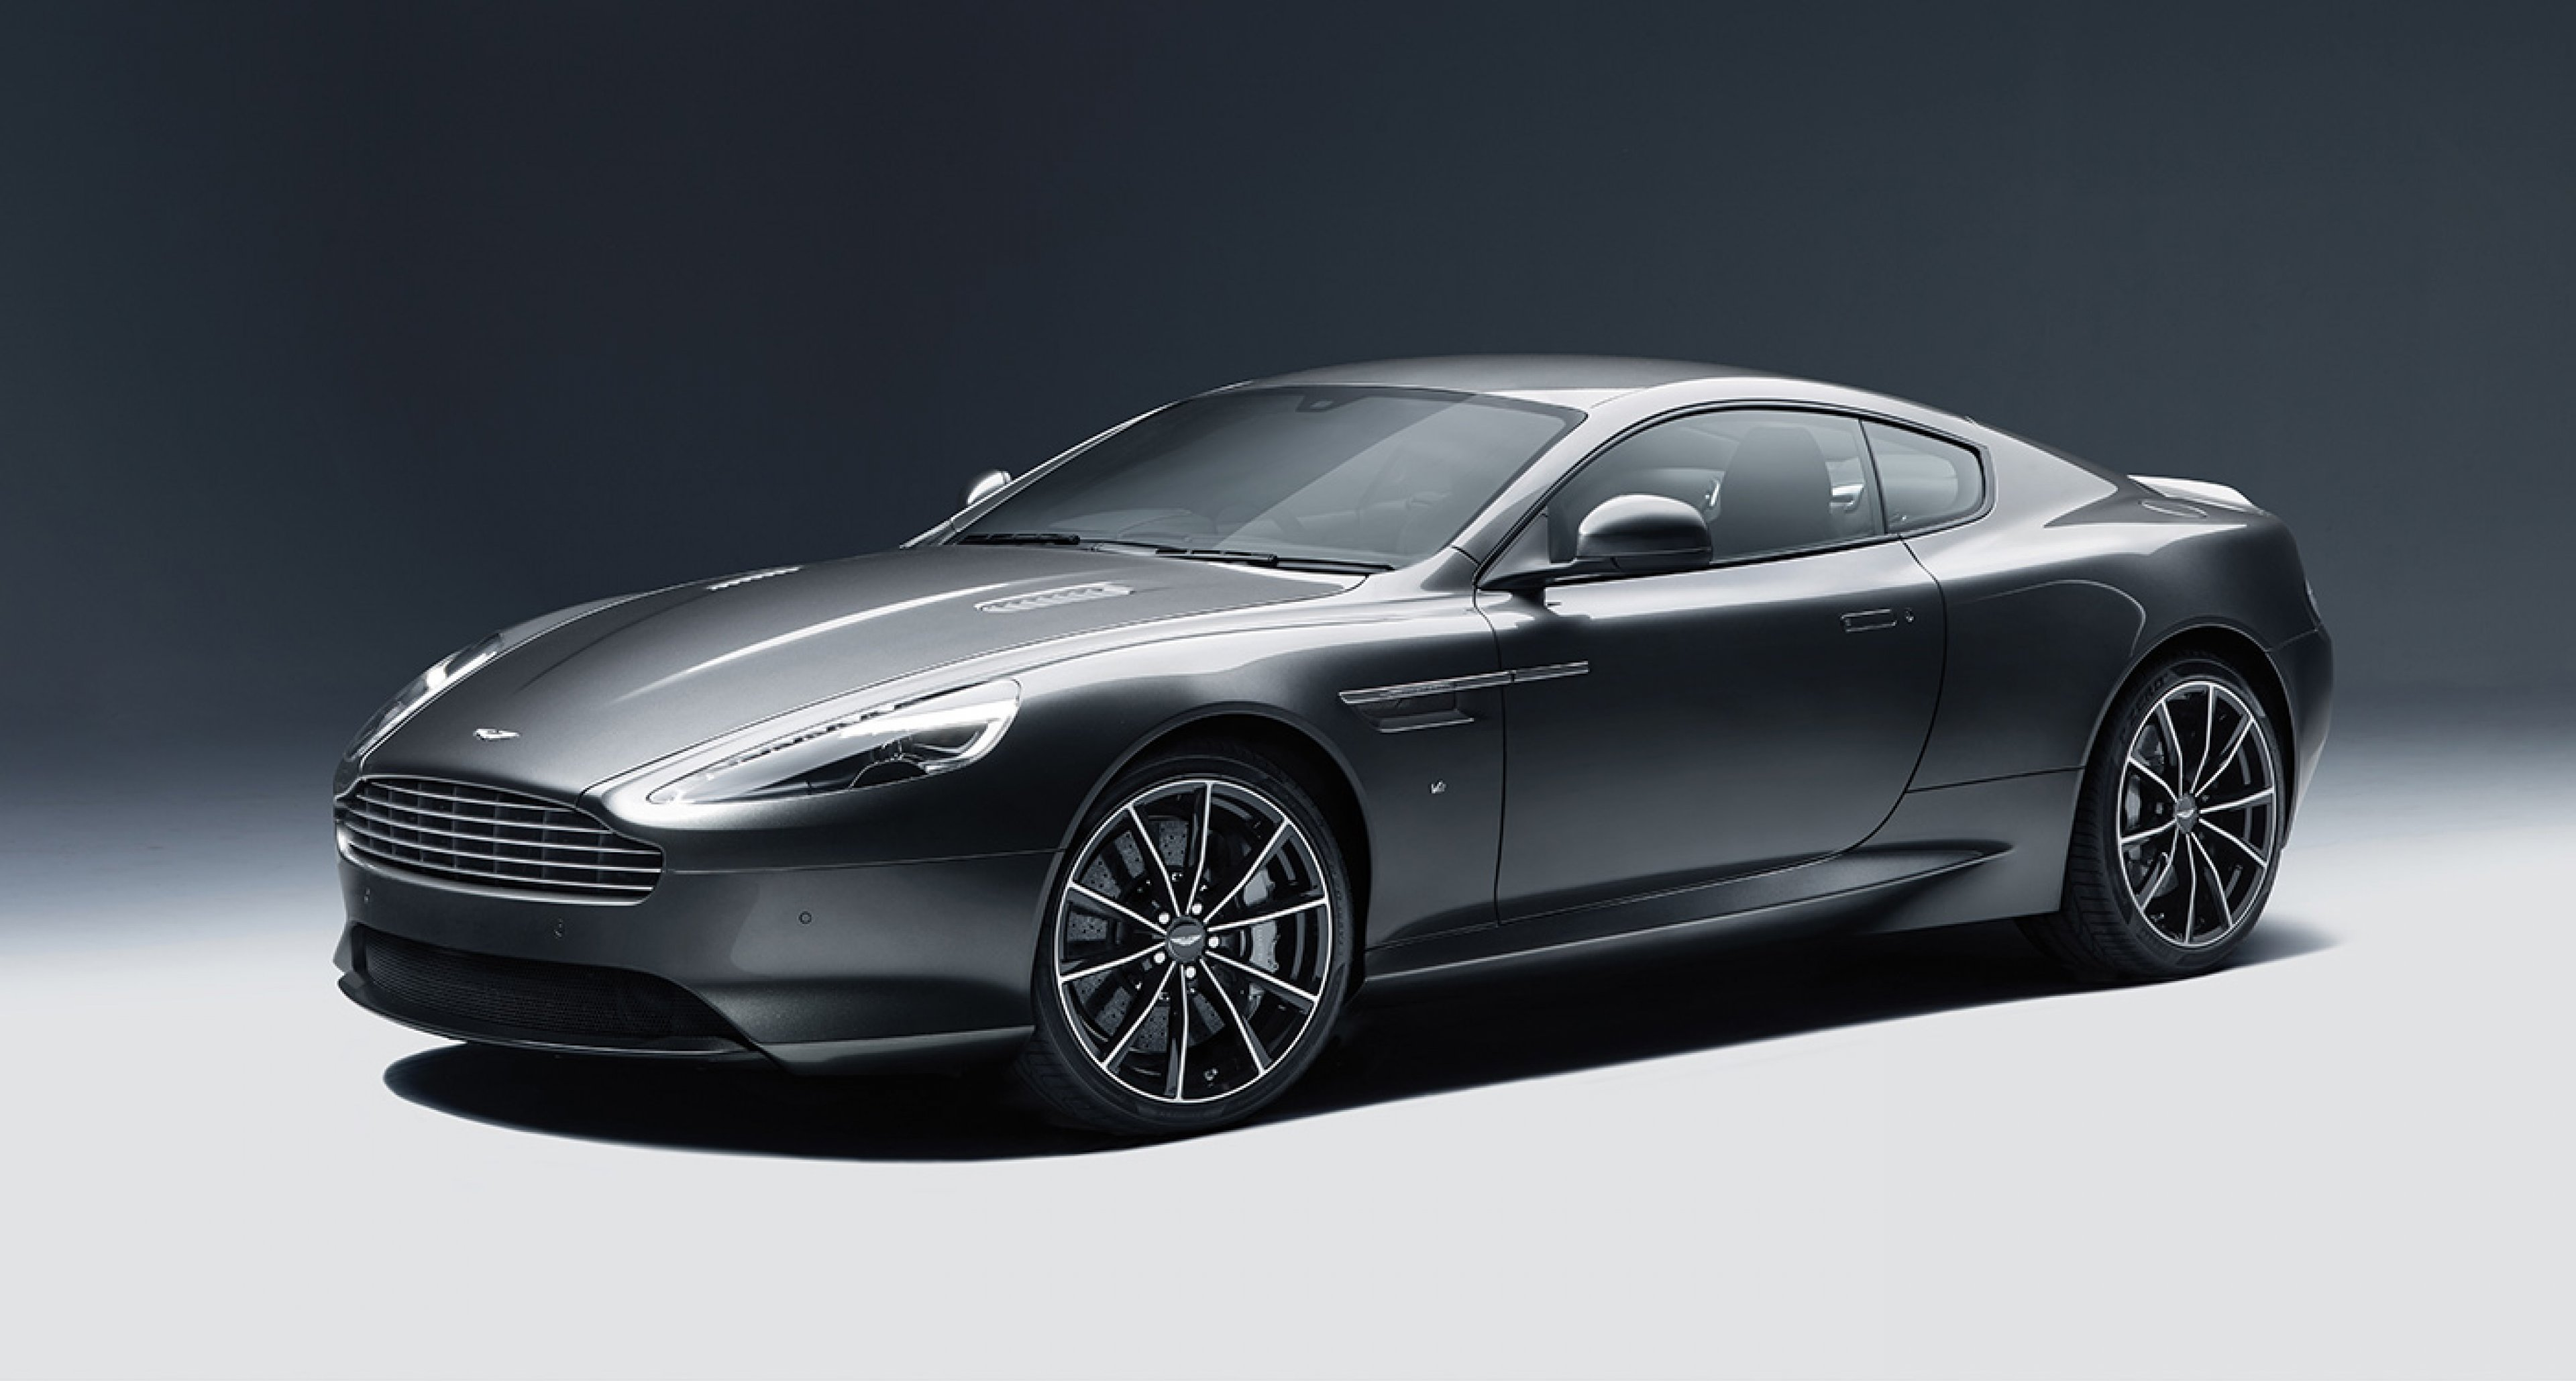 Will The Aston Martin Db9 Gt Become The Best Db9 Ever Classic Driver Magazine